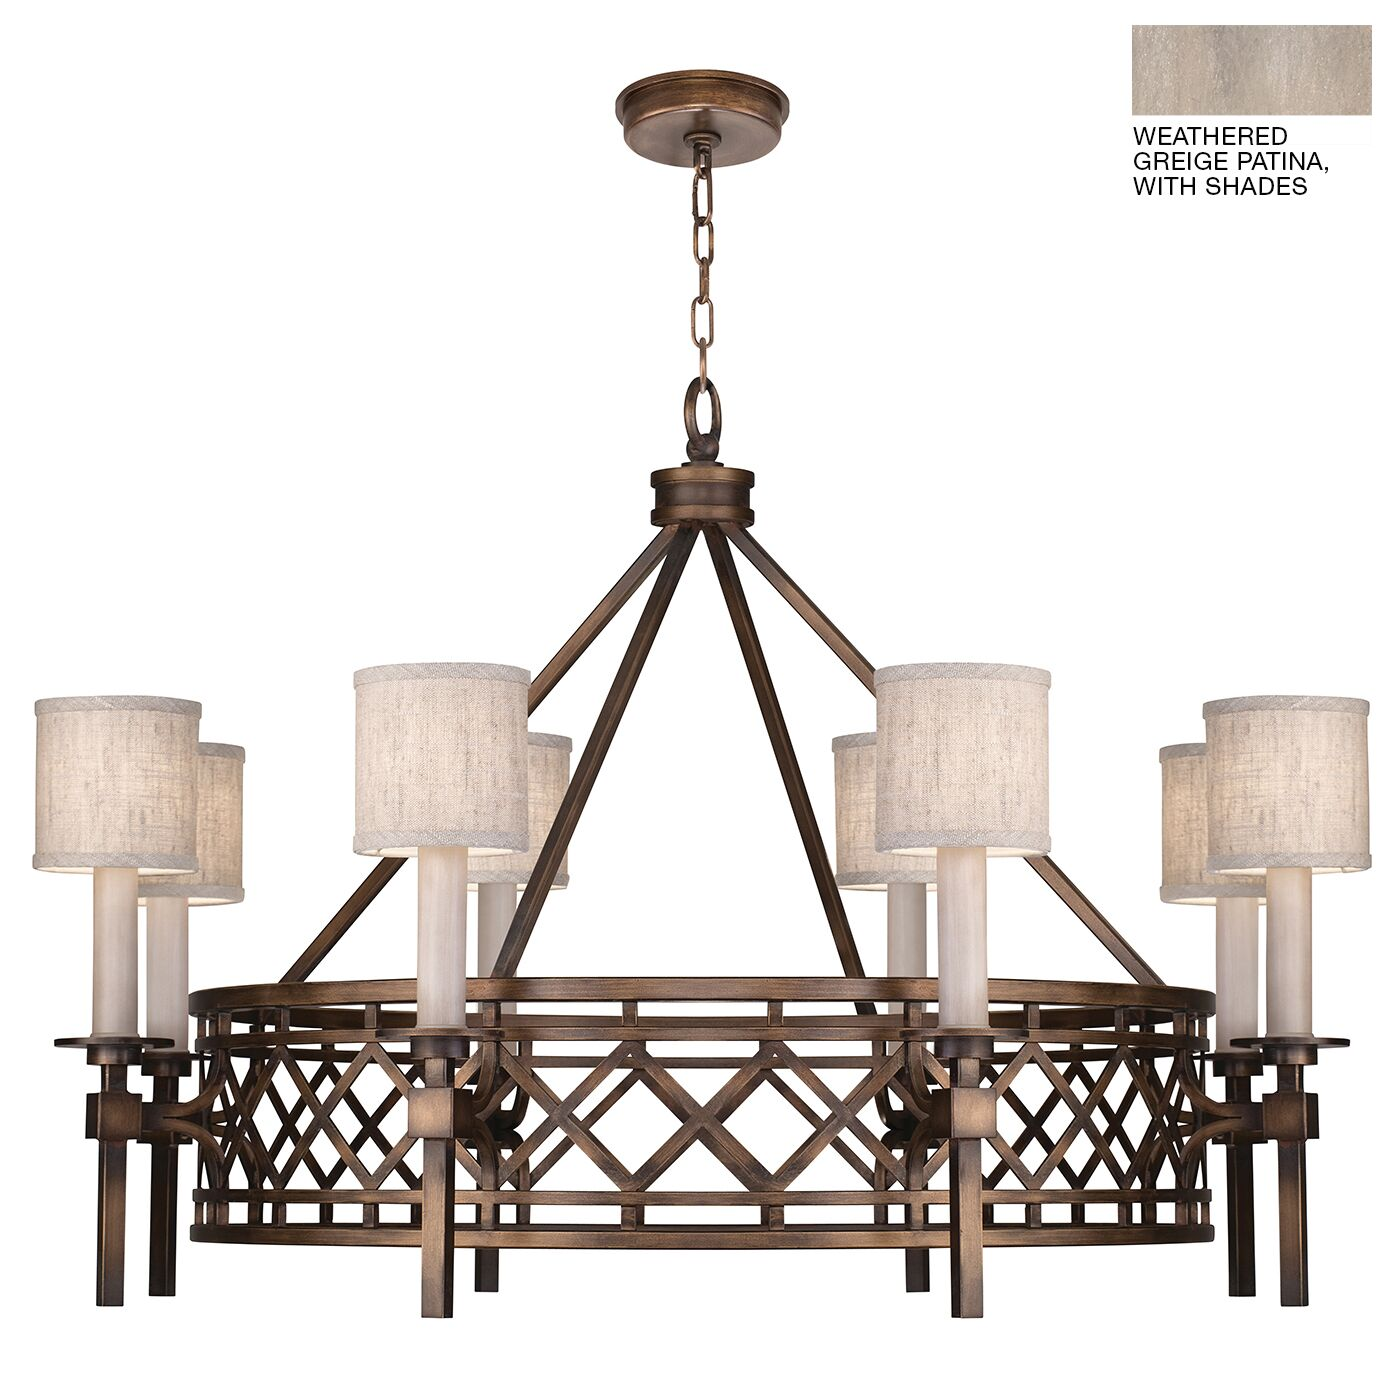 Cienfuegos 8-Light Wagon Wheel Chandelier Shade Included: Yes, Size: 27.5